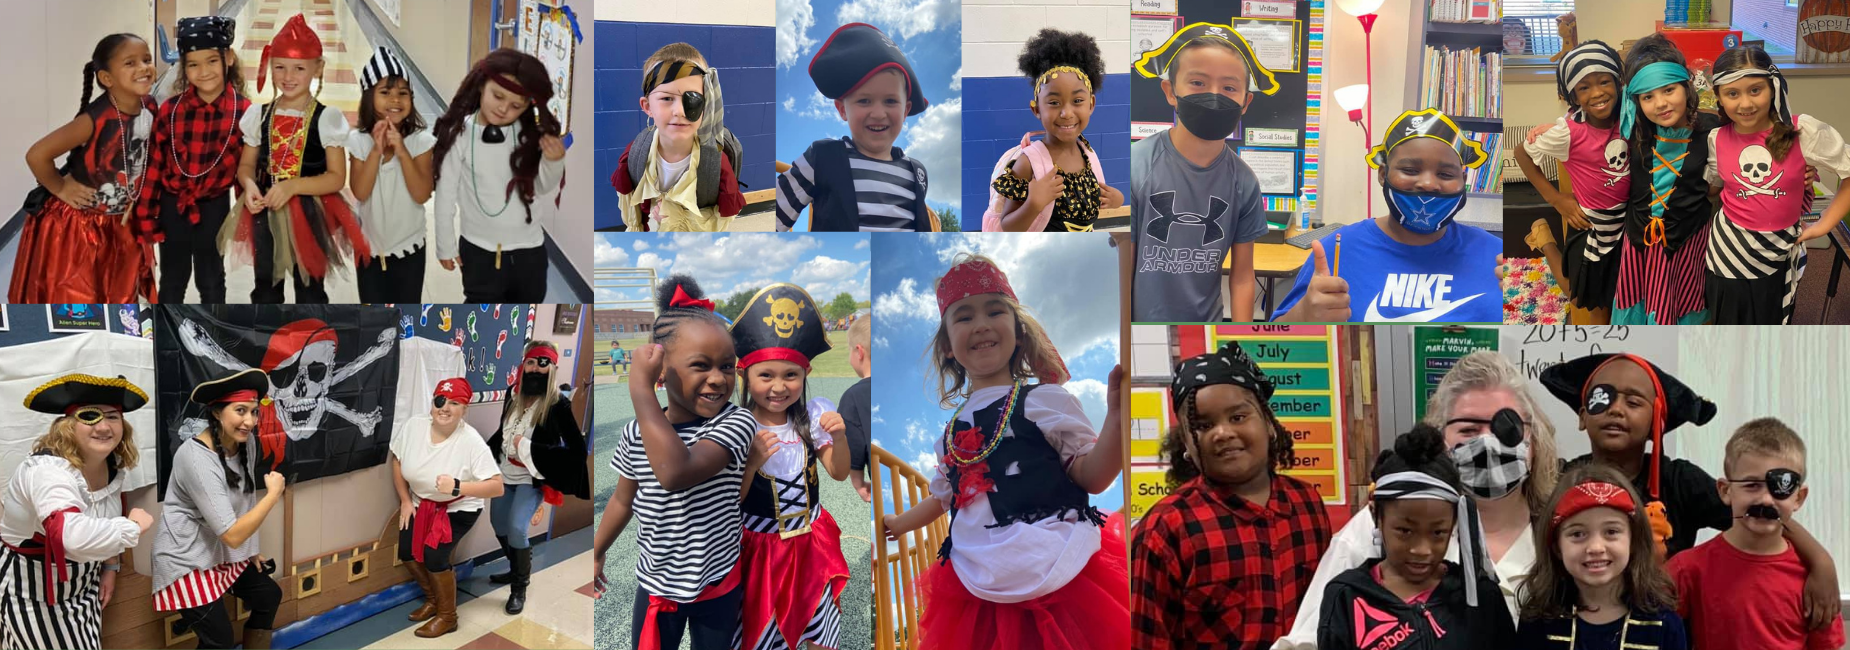 collage of elementary students dressed up as pirates